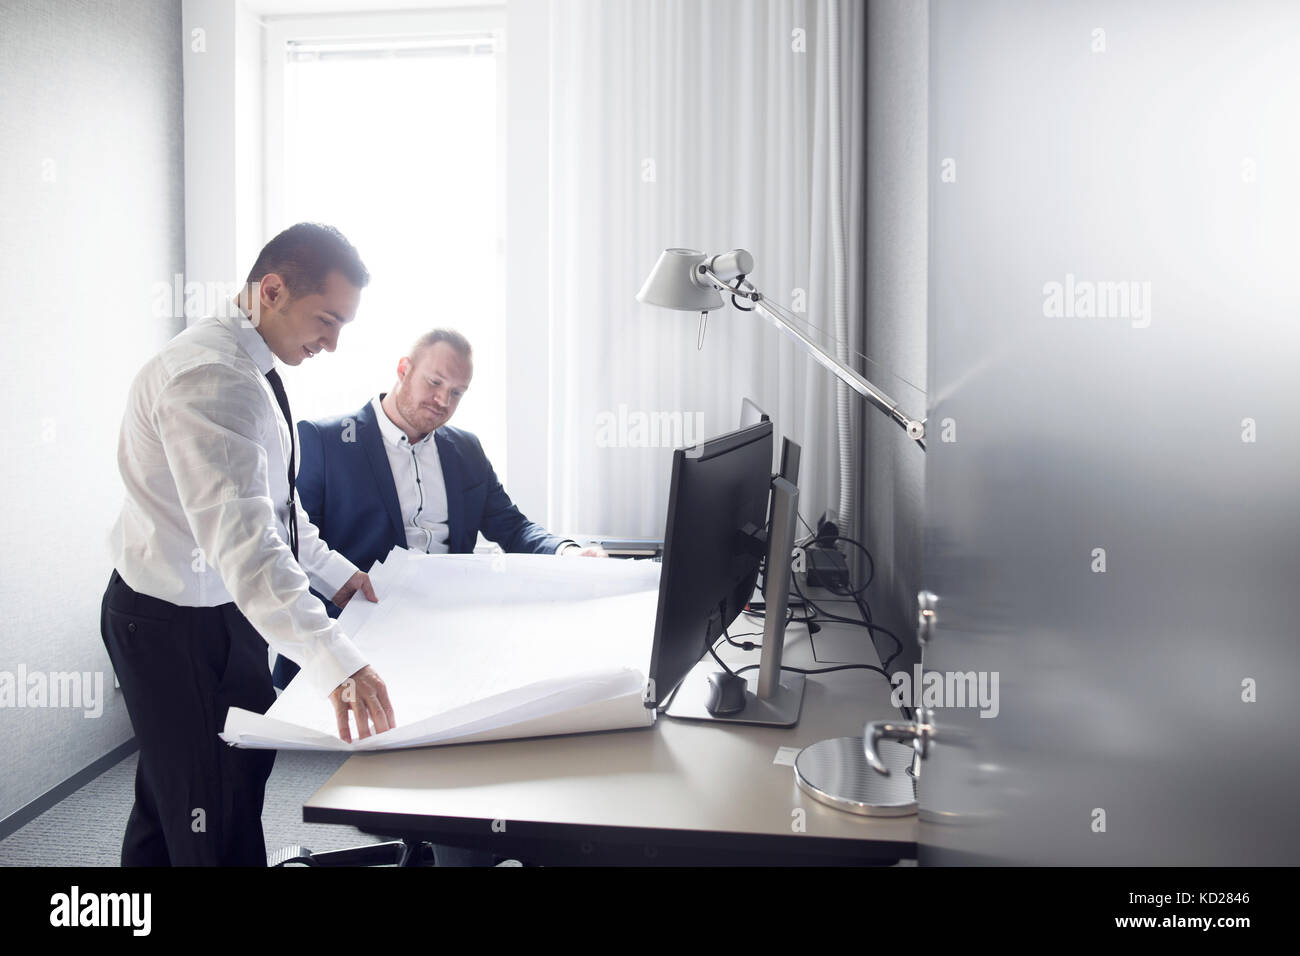 Architectes working in office Photo Stock